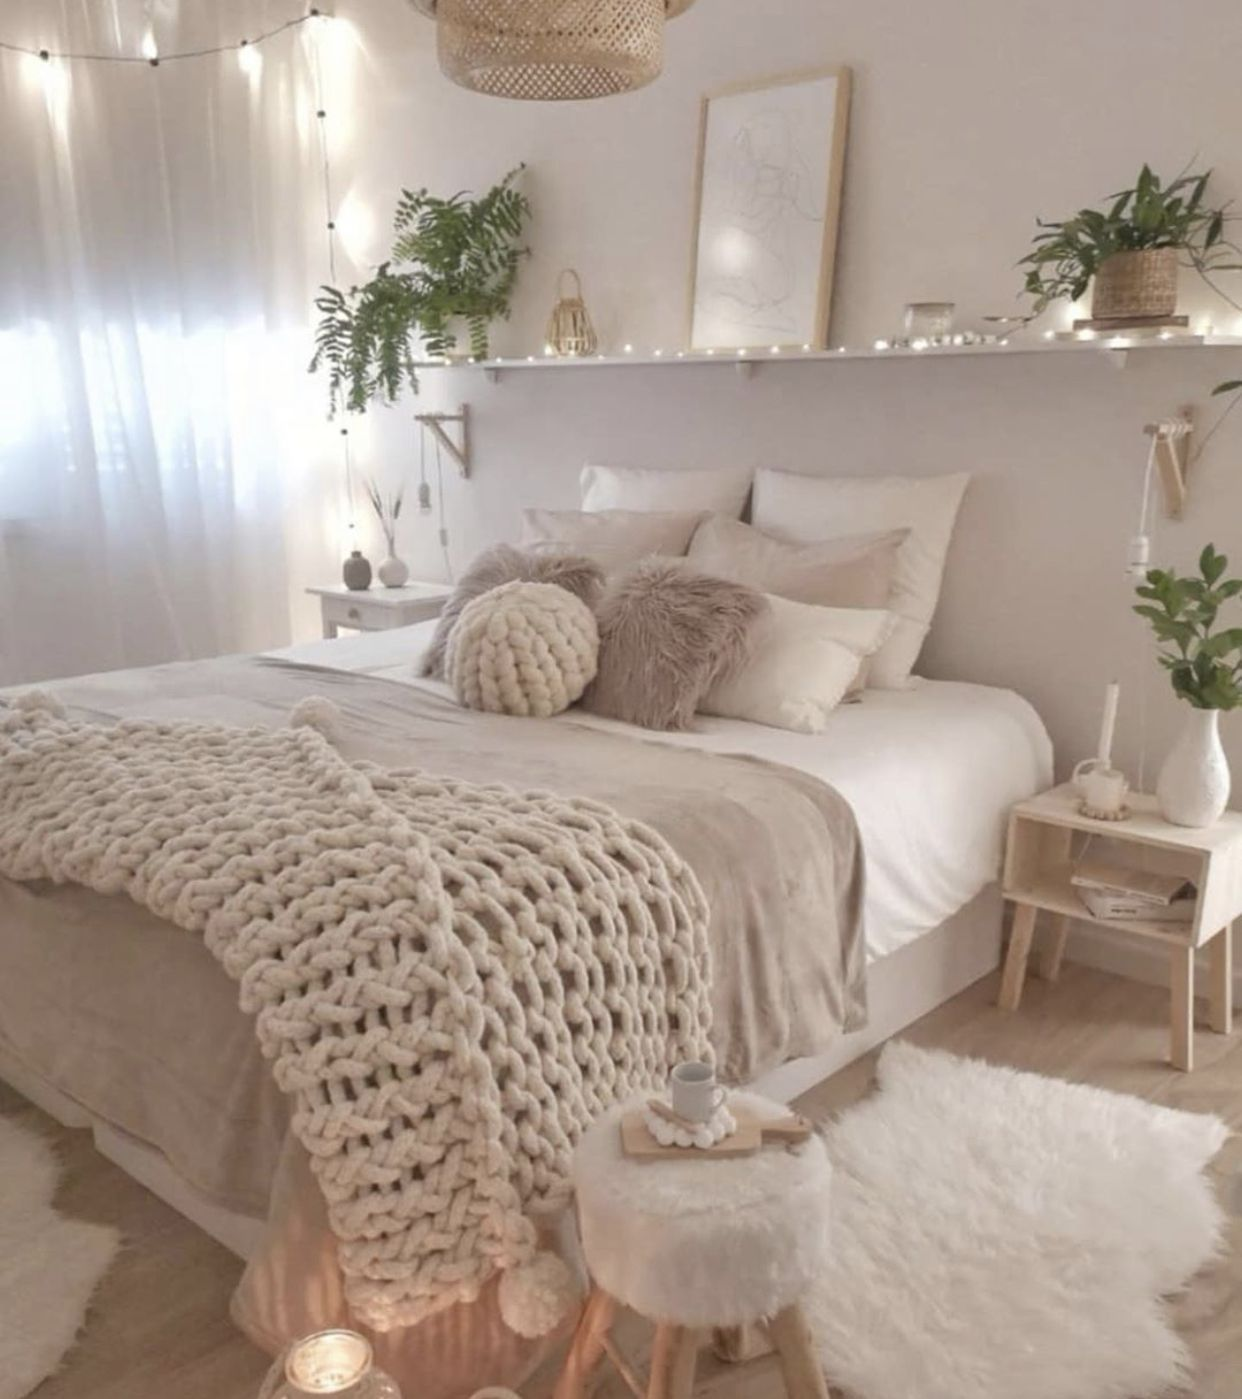 Bedroom Inspo! Inspiration for your next room. I love all the decor and items in